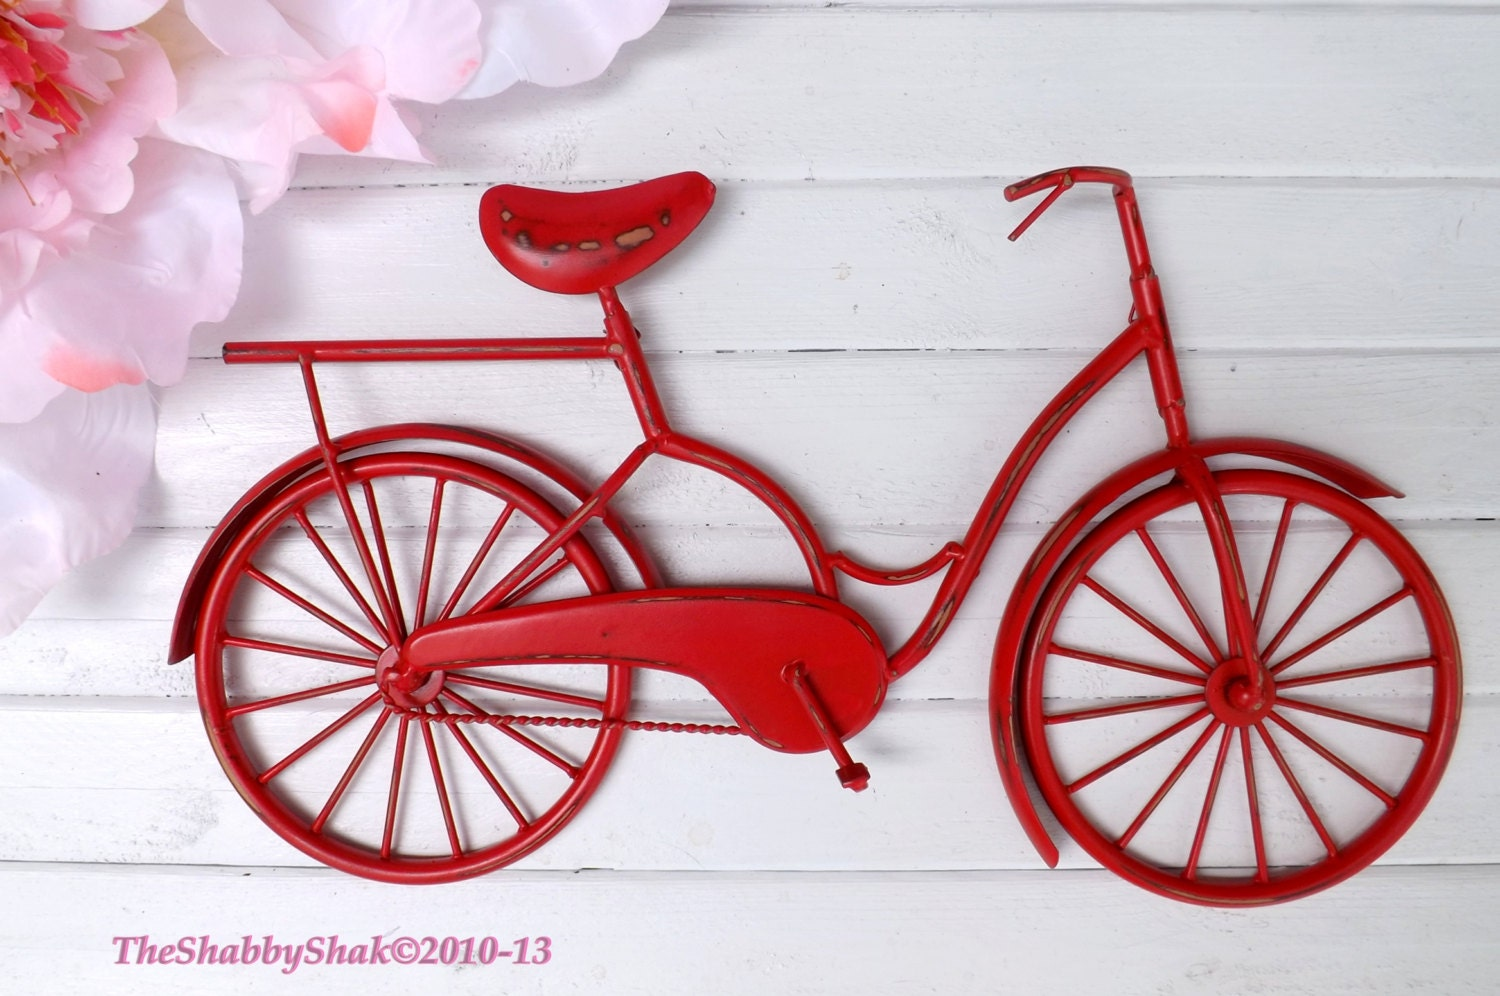 Red Metal Wall Decor: Bicycle Wall Art / Red Wall Decor / Metal Bicycle By